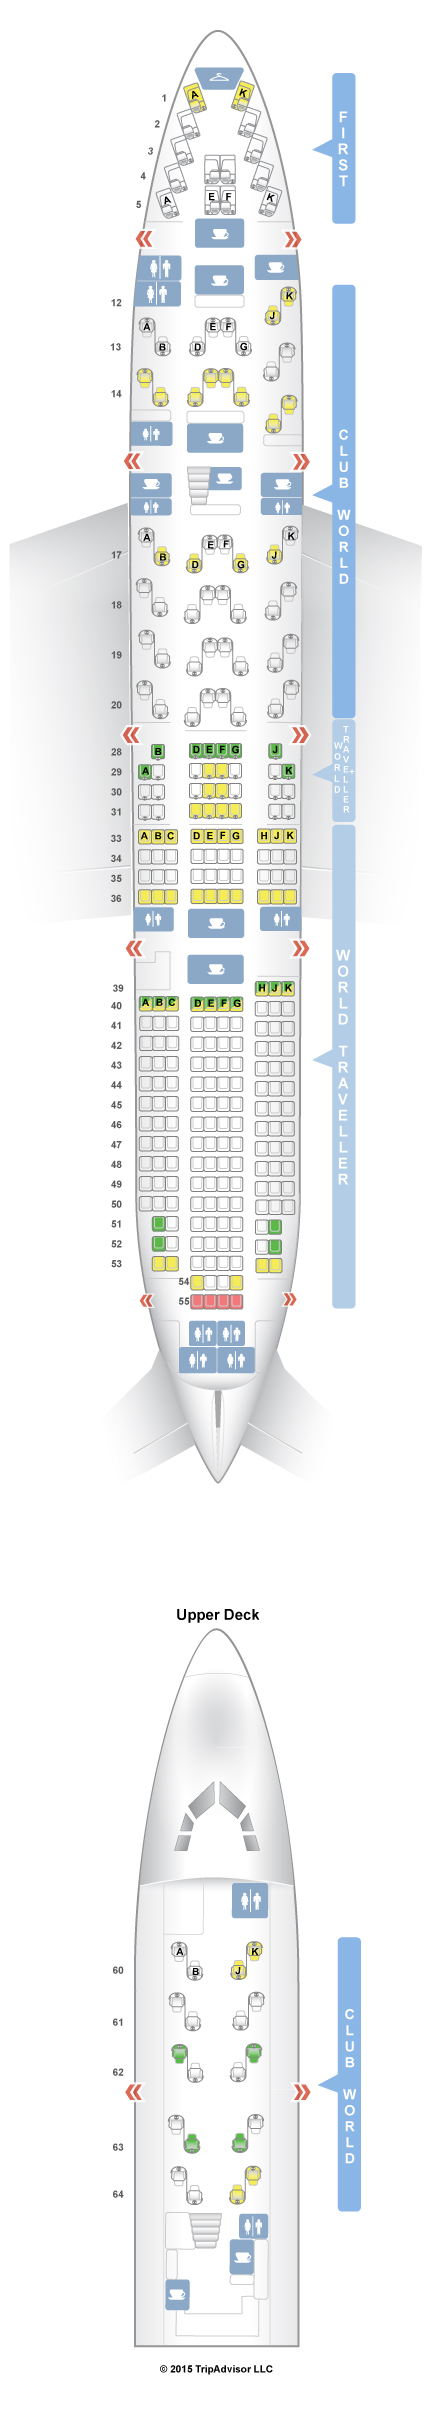 seatguru seat map british airways boeing 747 400 744 v2